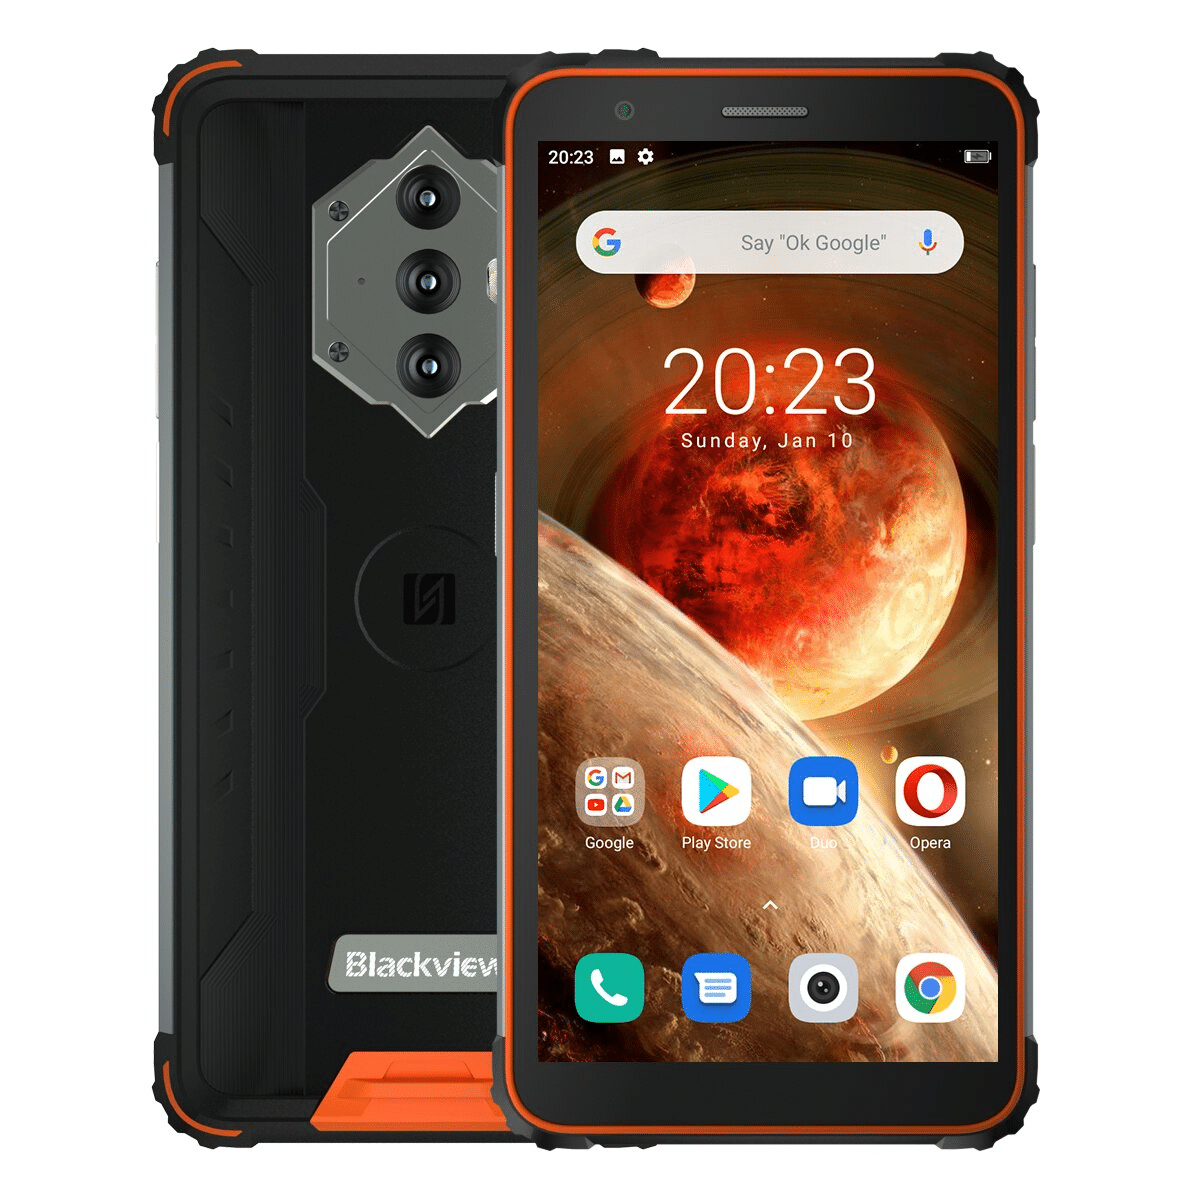 Blackview BV6600